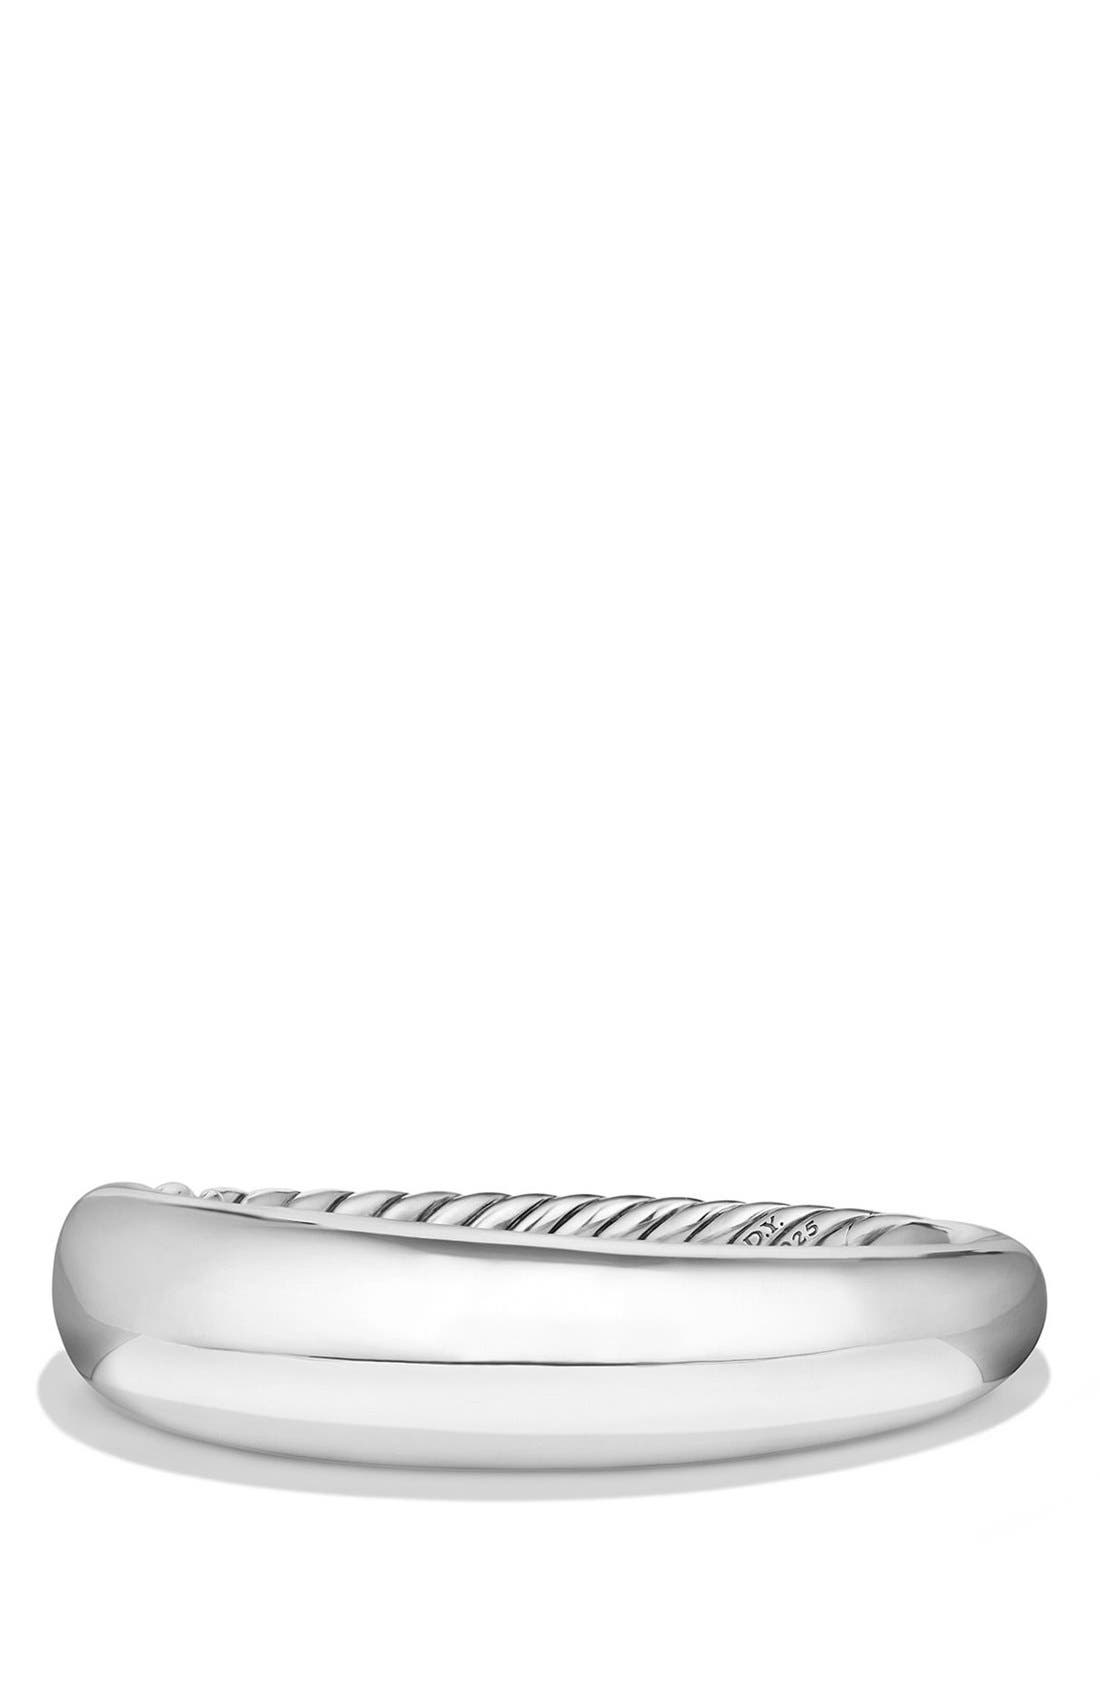 Main Image - David Yurman 'Pure Form' Large Sterling Silver Bracelet